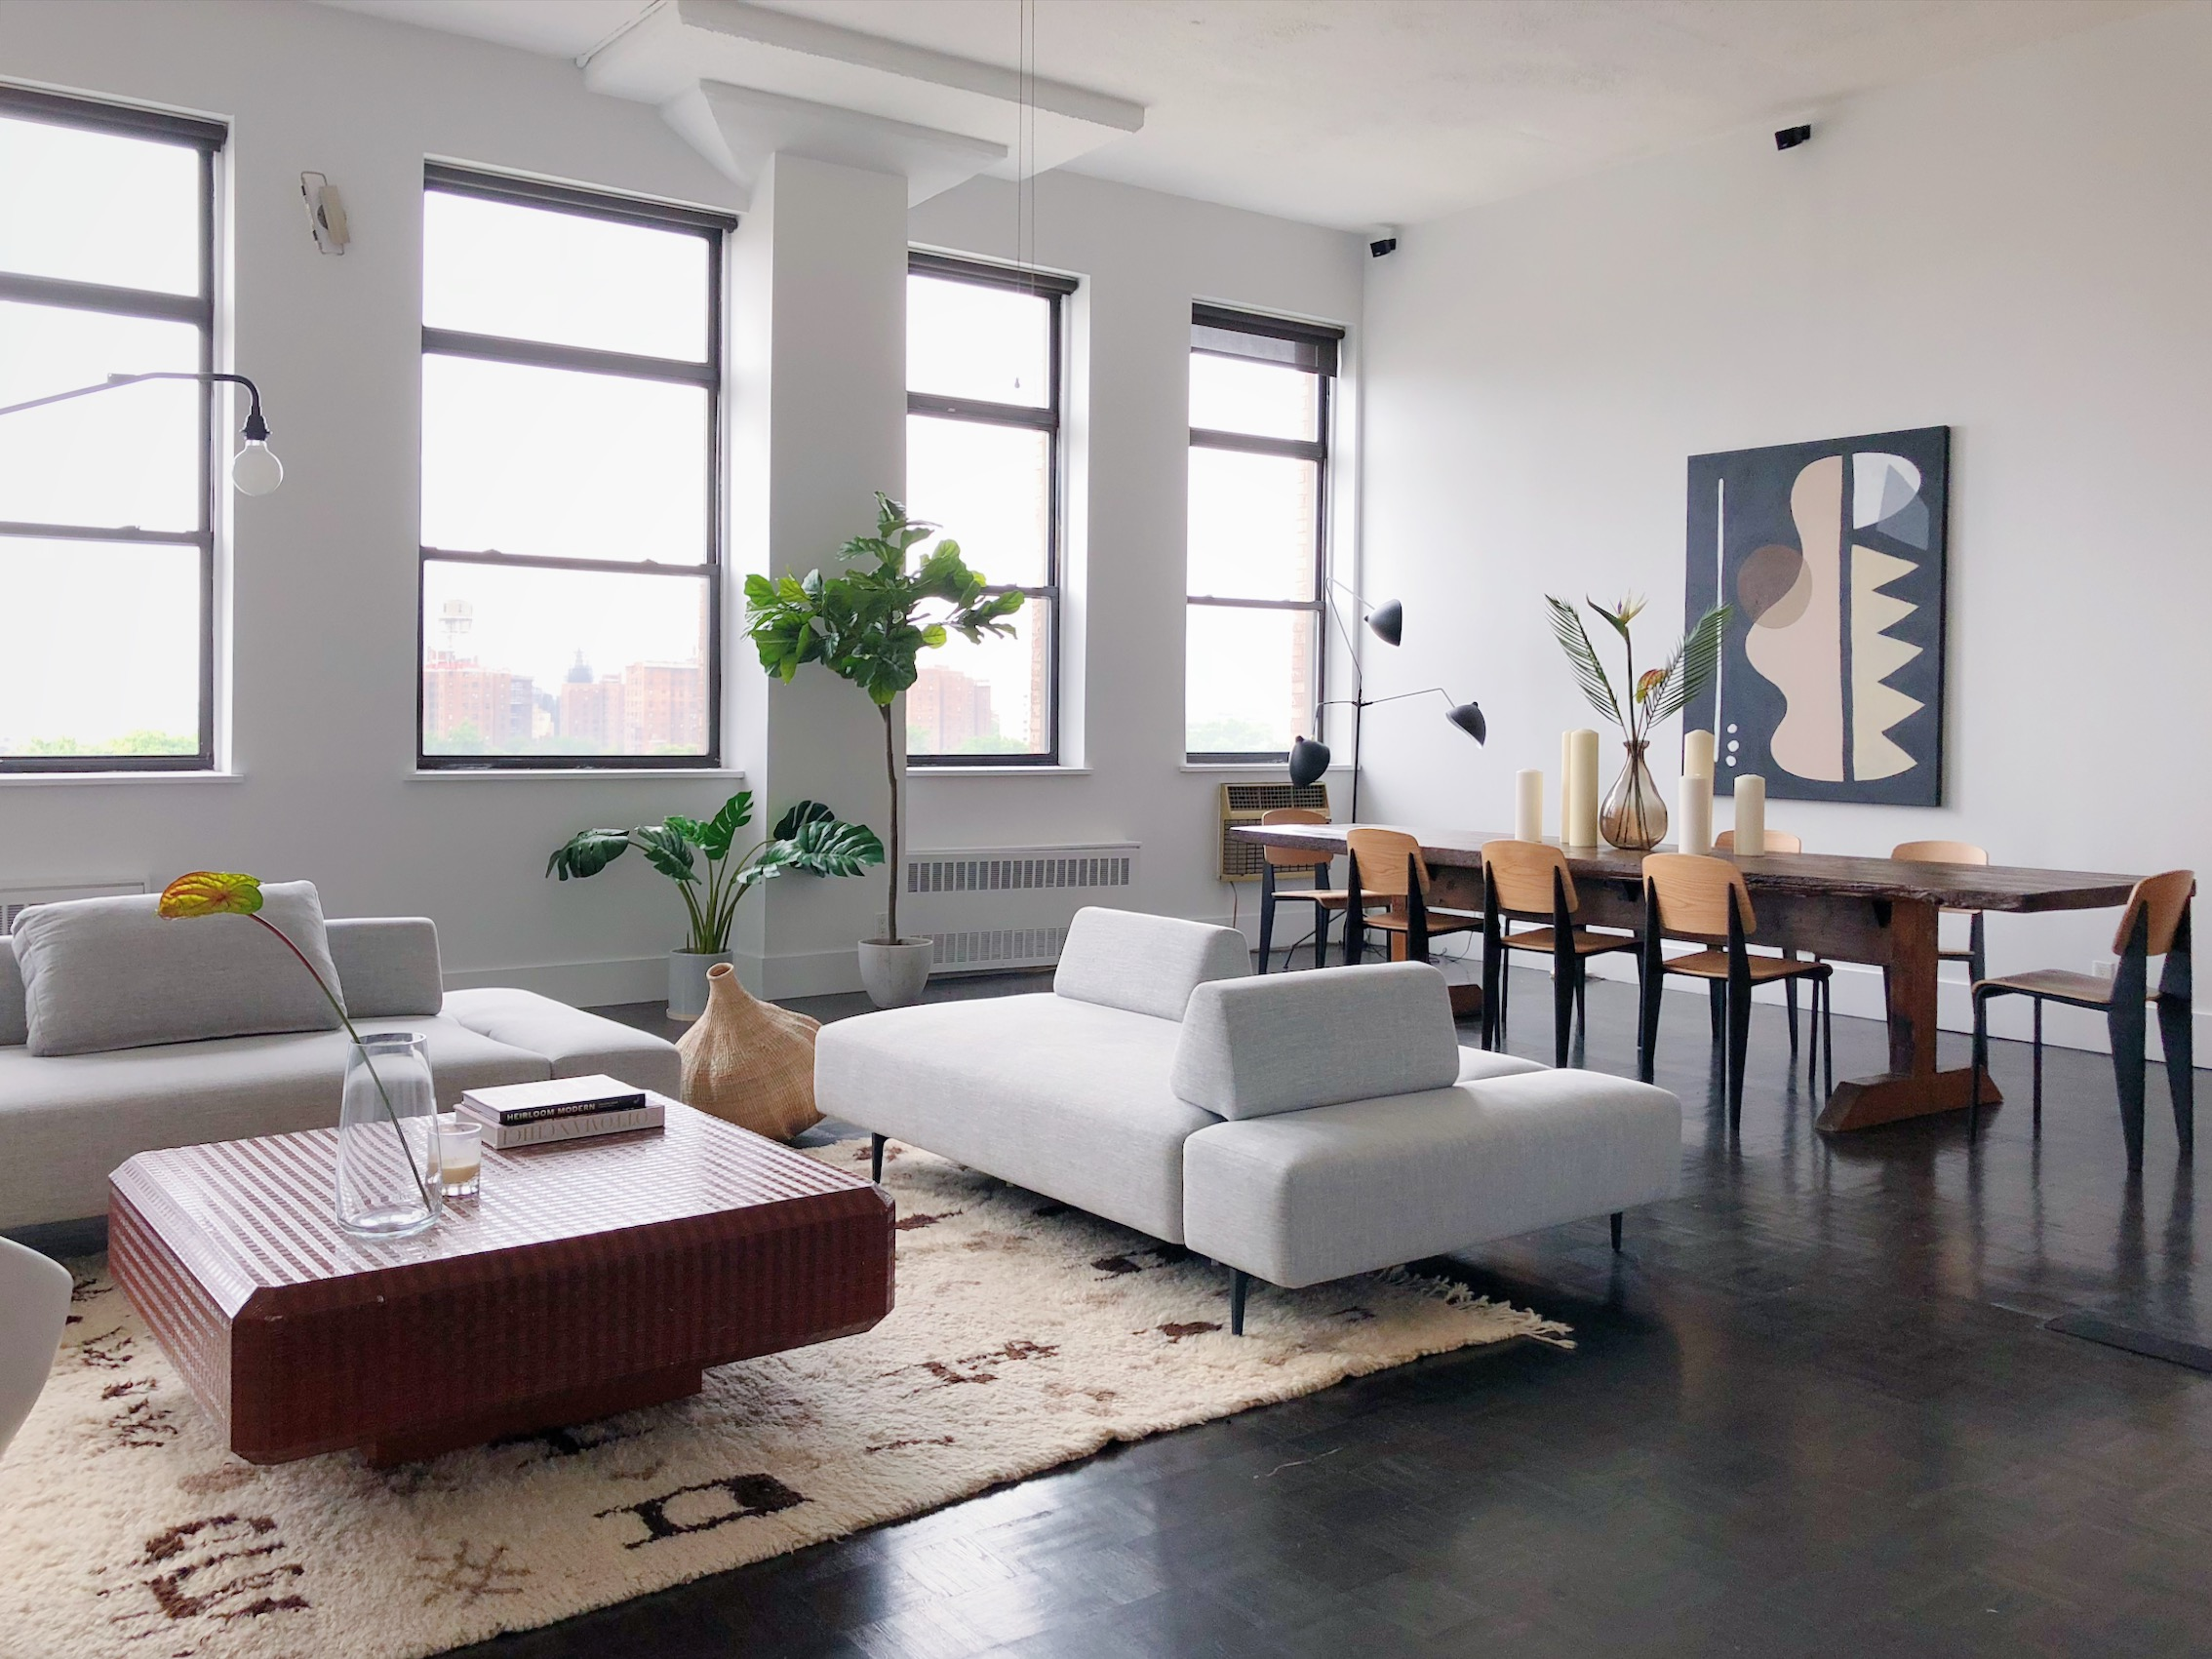 Hovey Design - Staging NYC Brooklyn - 10.jpg